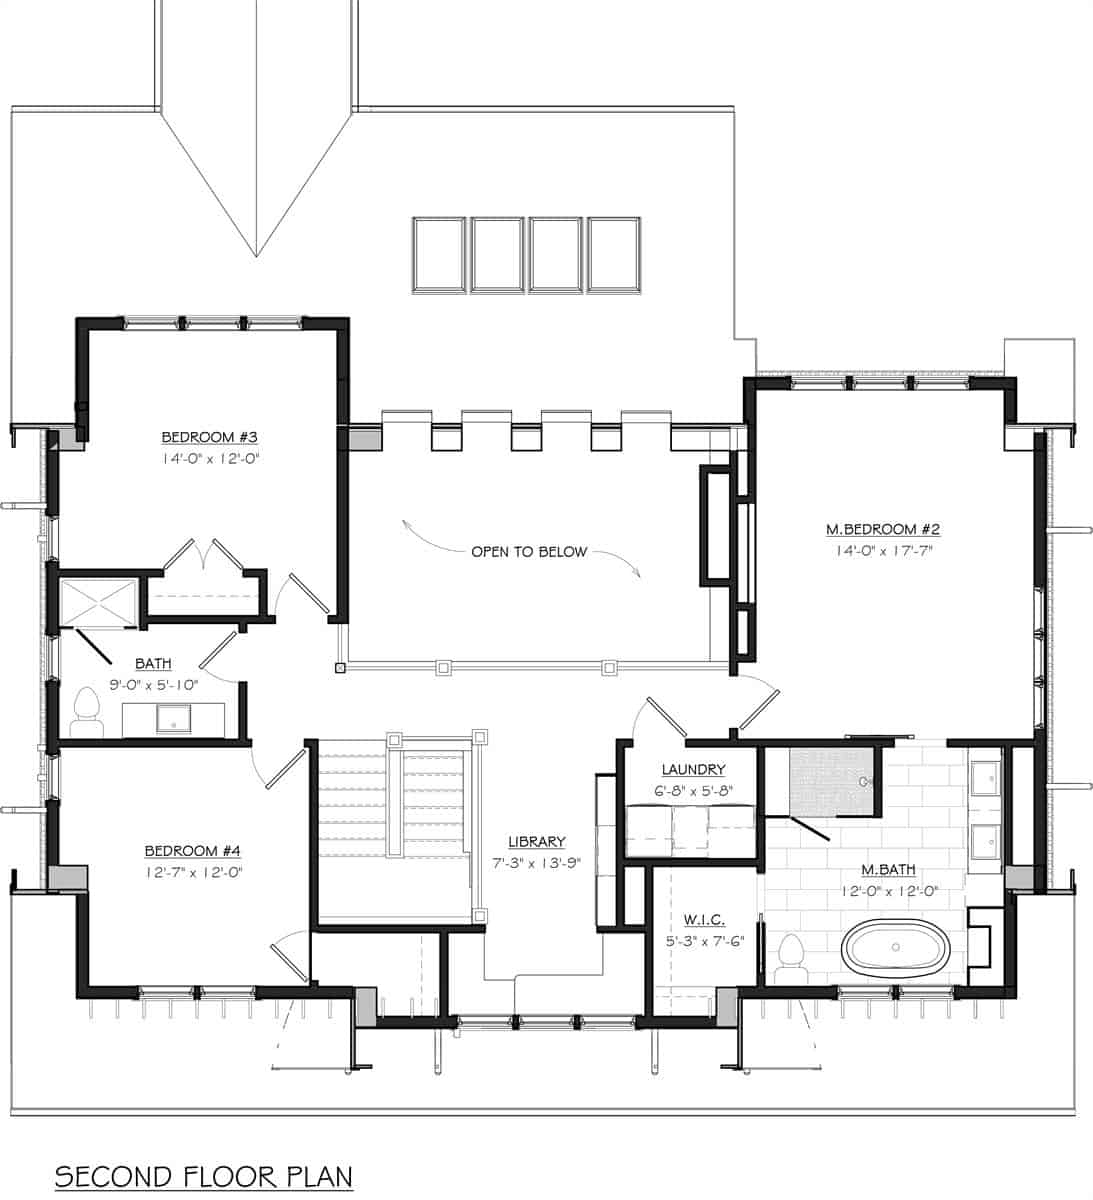 Second level floor plan with three bedrooms, a laundry room, and a library loft.